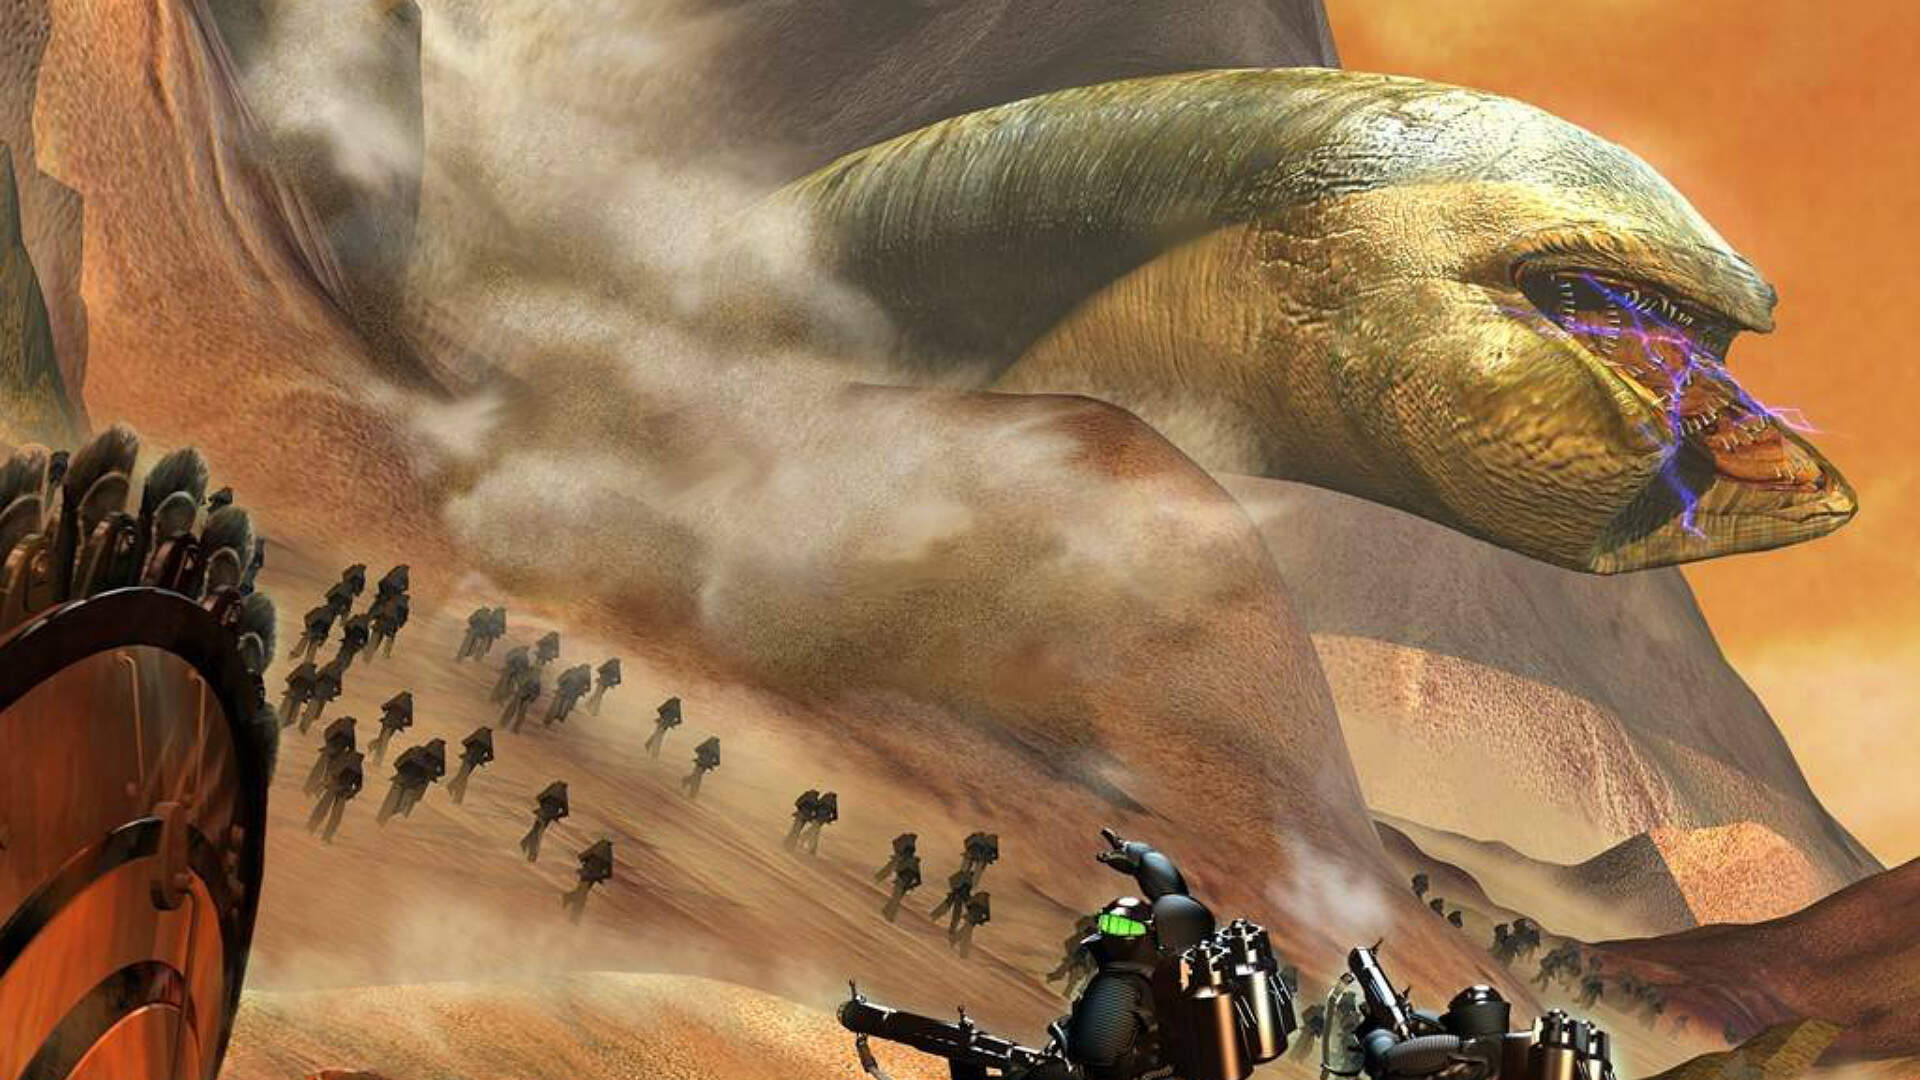 Conan Developer Funcom Picks Up the Rights to Make Dune Games